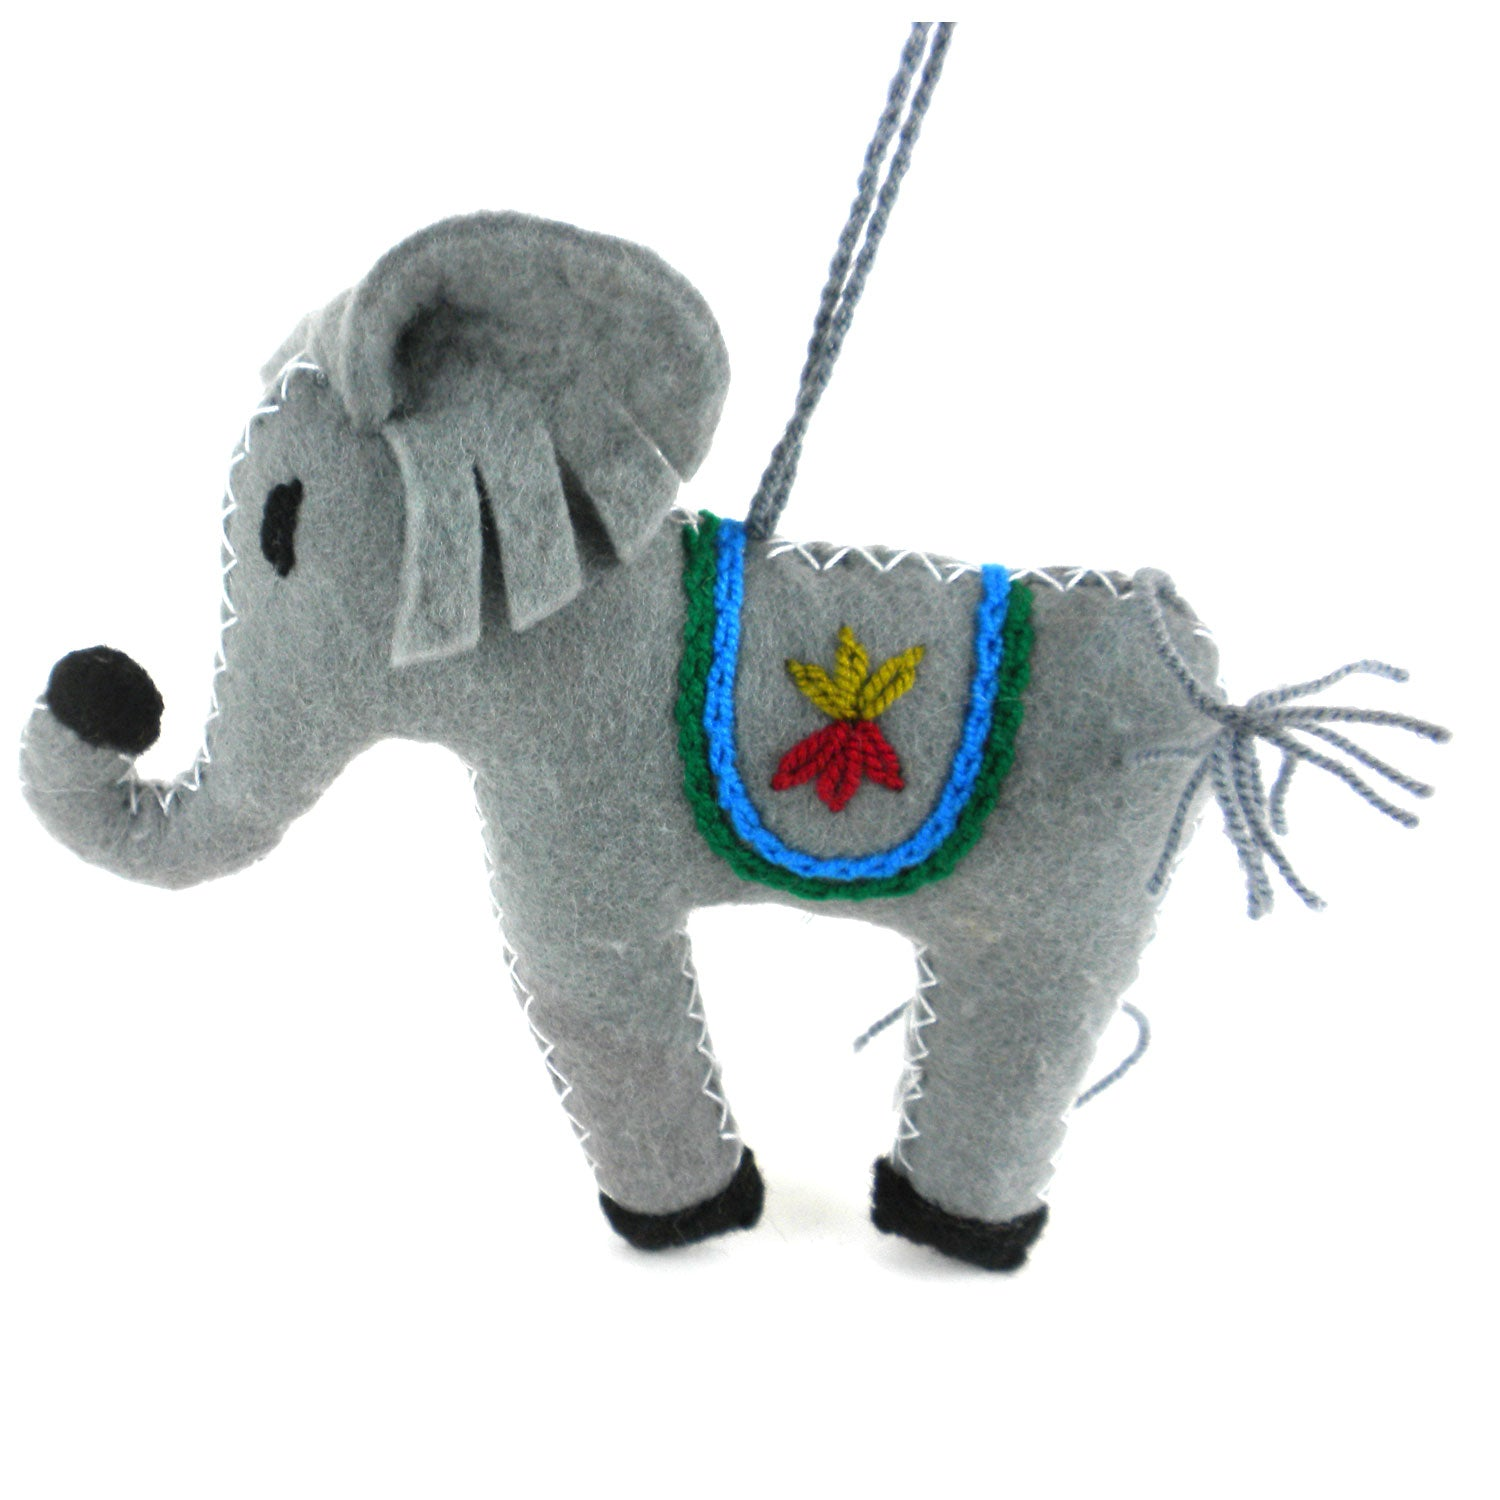 Elephant Felt Holiday Ornament